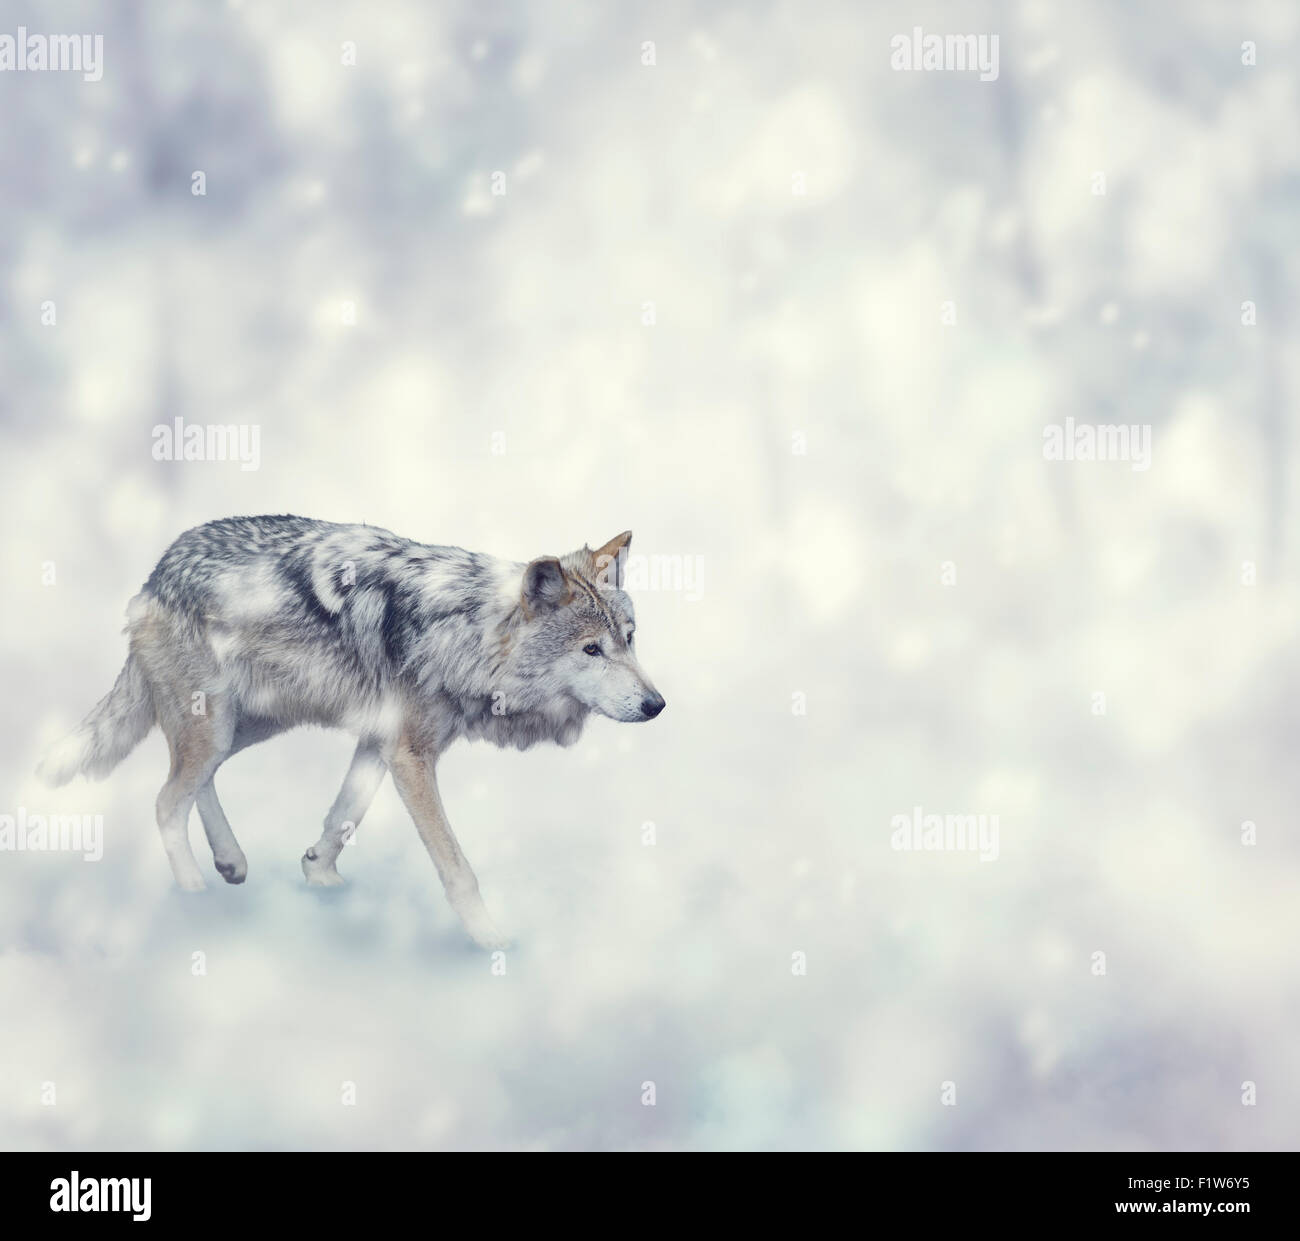 Wolf Walking on The Snow - Stock Image